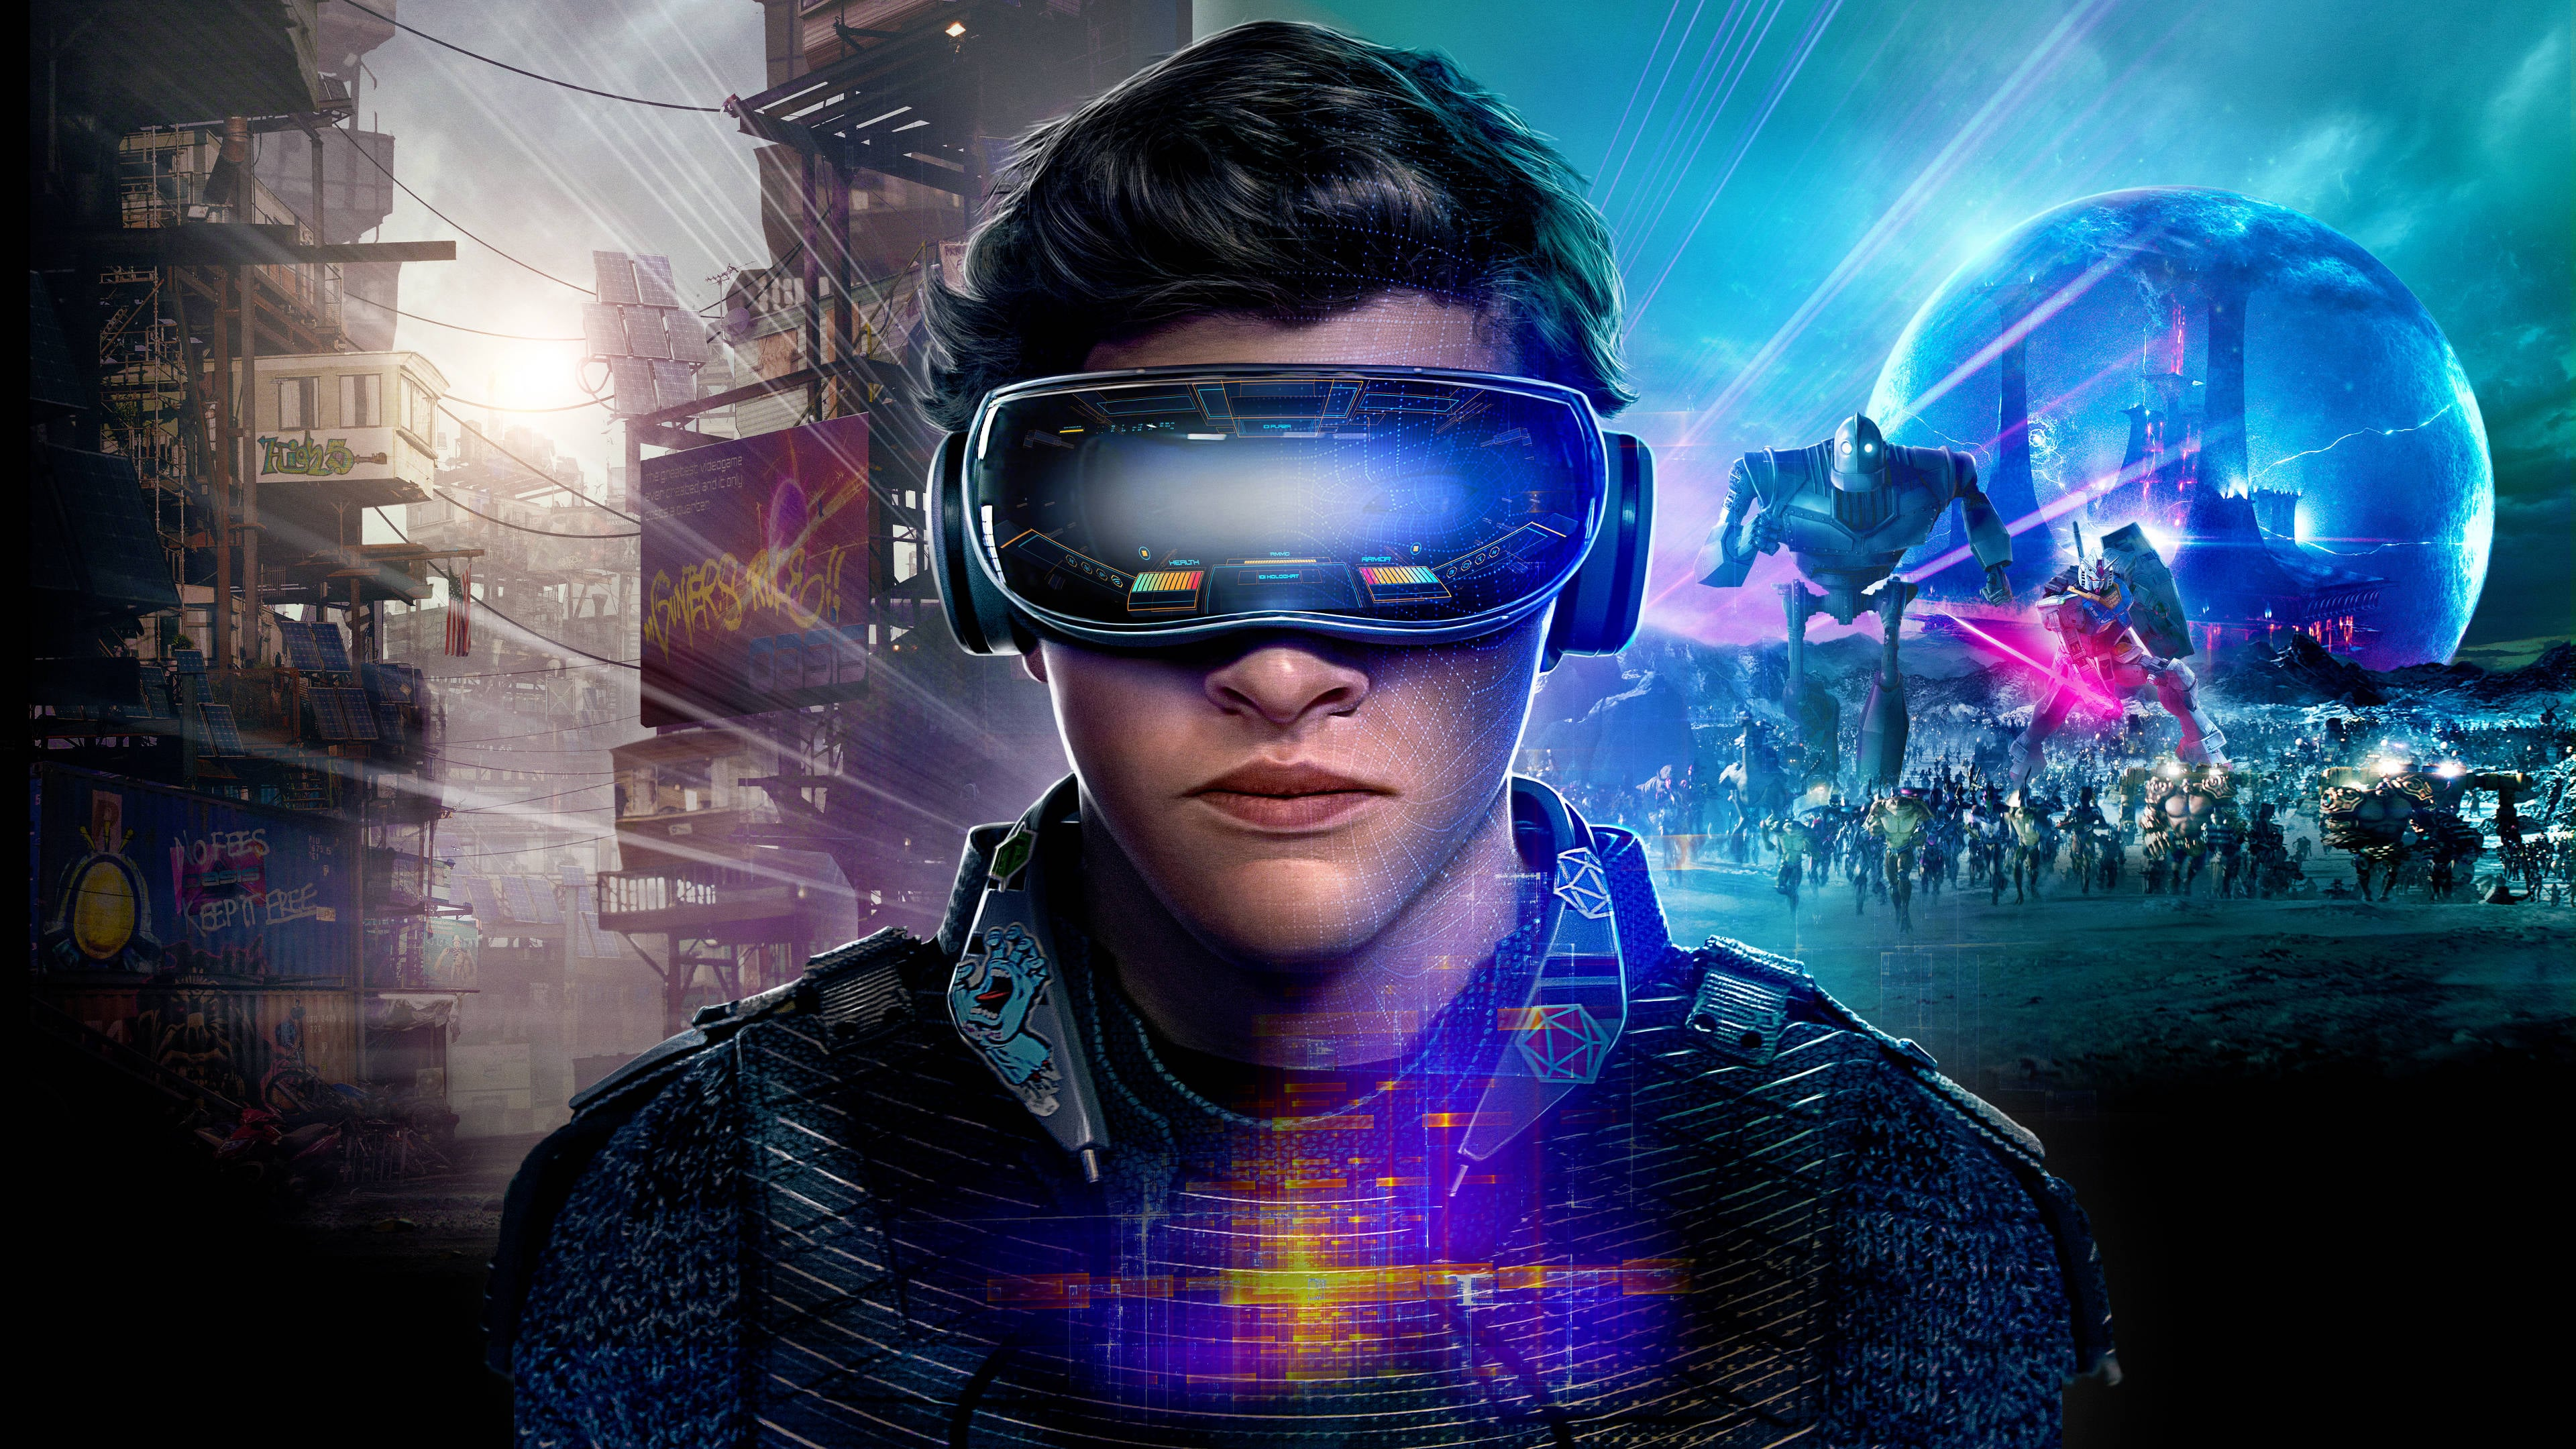 Movies Like Ready Player One